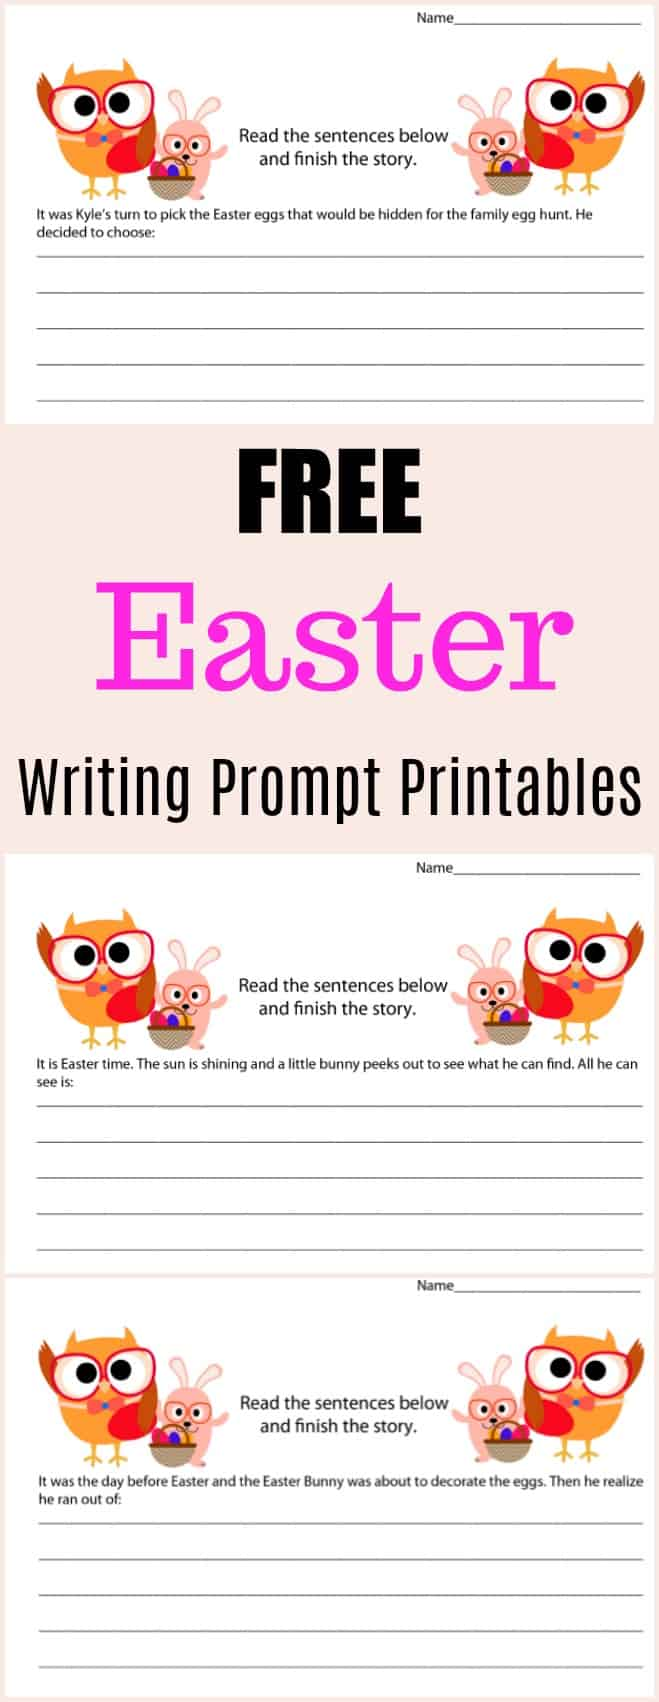 Free Easter Writing Prompt Printables